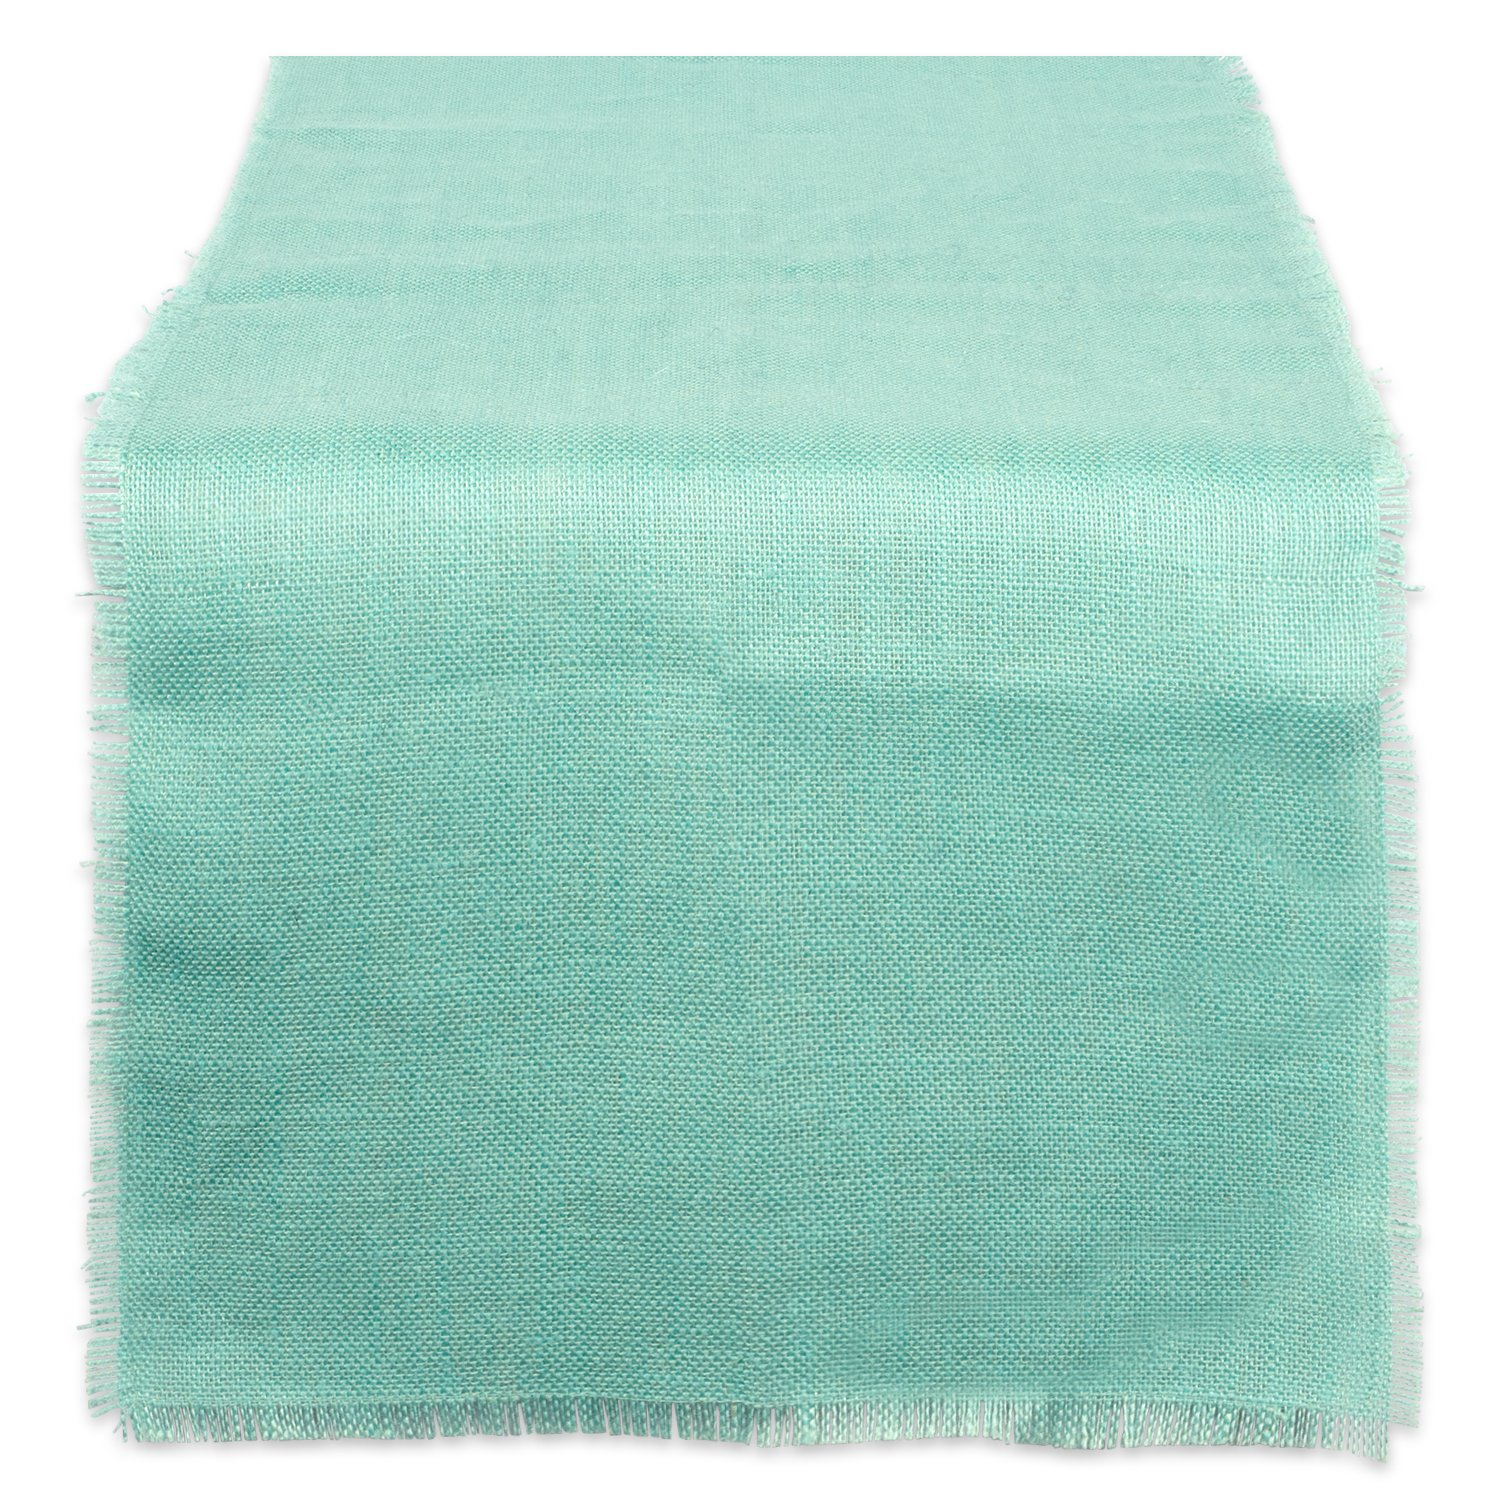 DII 100% Jute, Rustic, Vintage Table Runner, for Parties, BBQ's, Everyday, Wedding Use, 15x74, Aqua